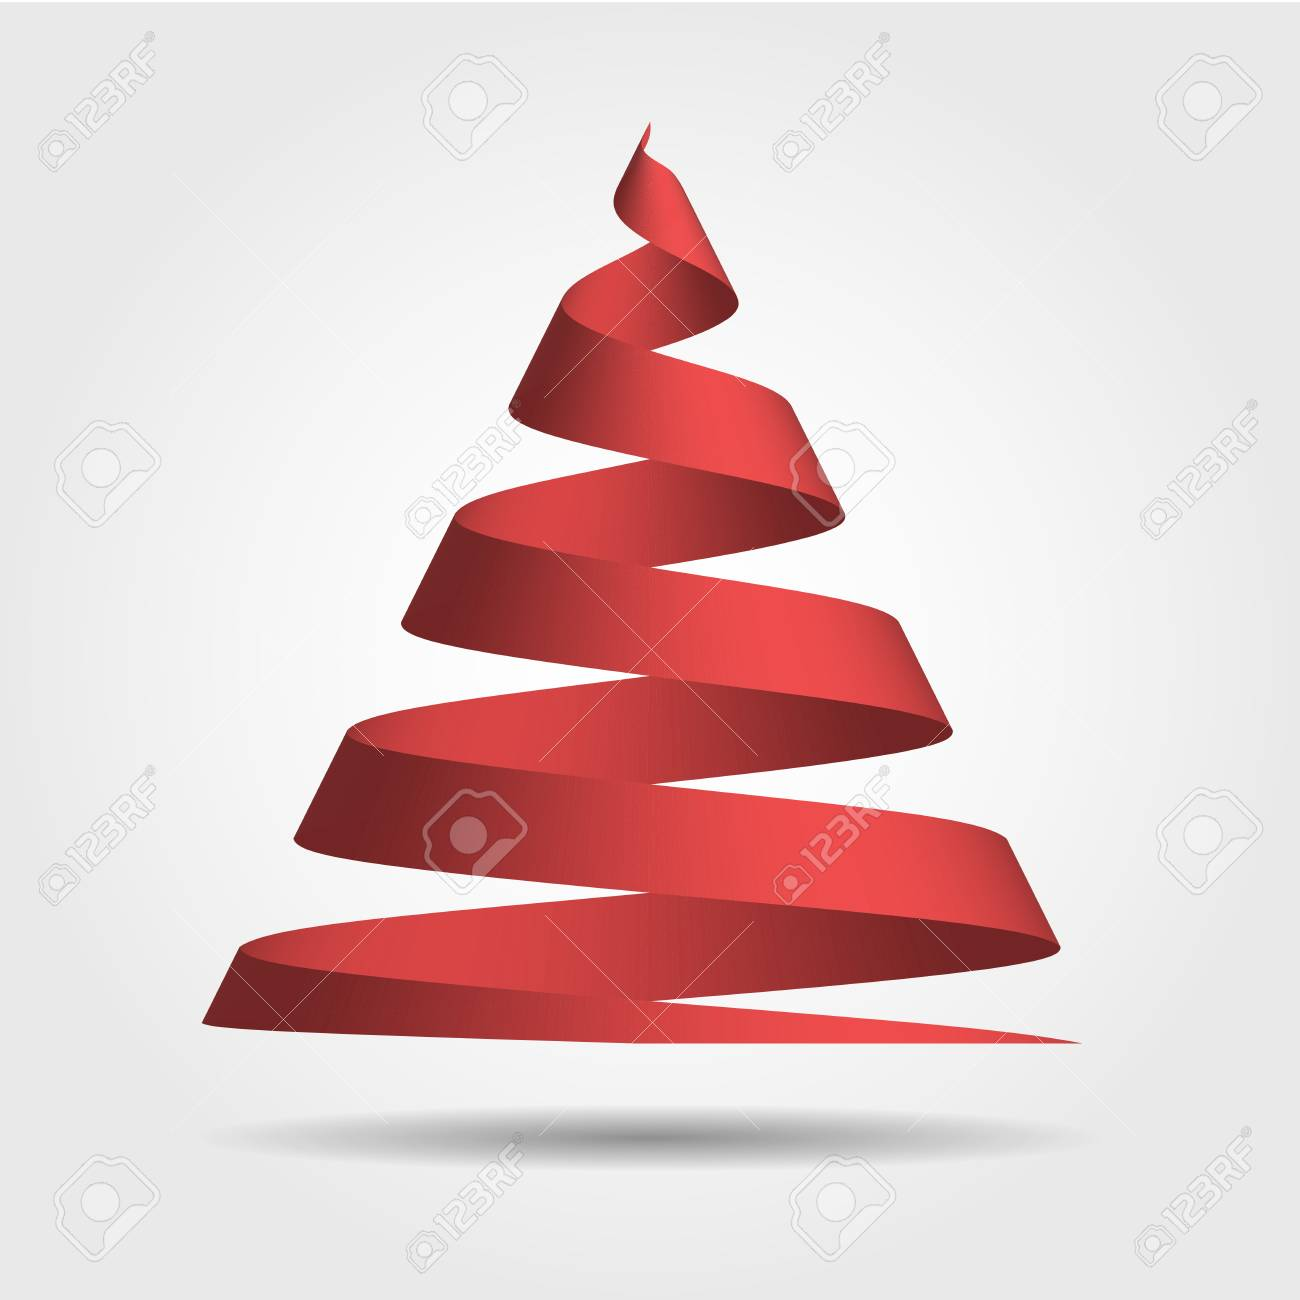 Simple Red Ribbon In A Shape Of Christmas Tree Merry Christmas Royalty Free Cliparts Vectors And Stock Illustration Image 69341318